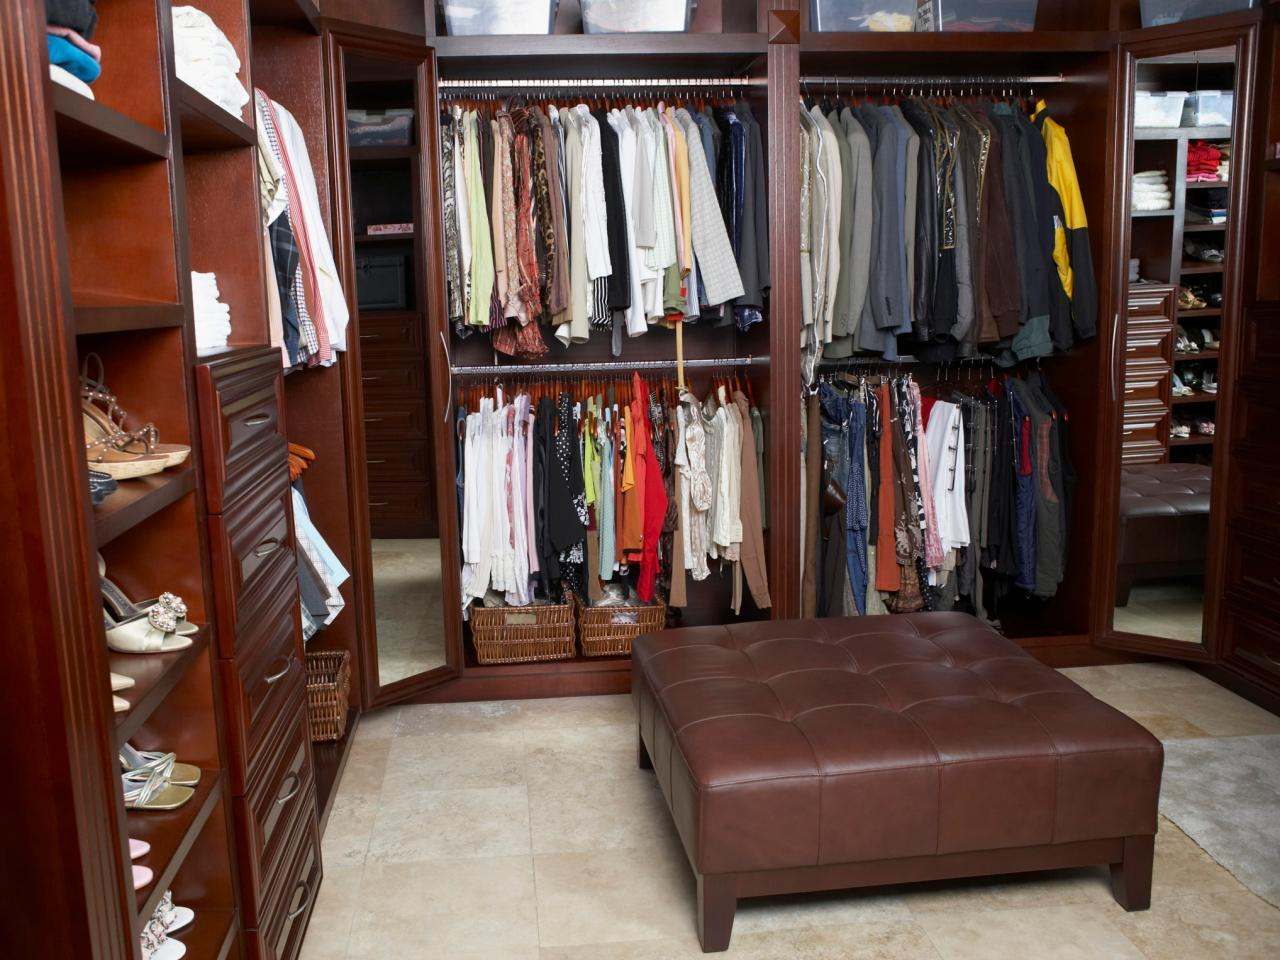 Marvelous Walk In Closet Design Ideas Part - 1: Walk-In Closet Design Ideas